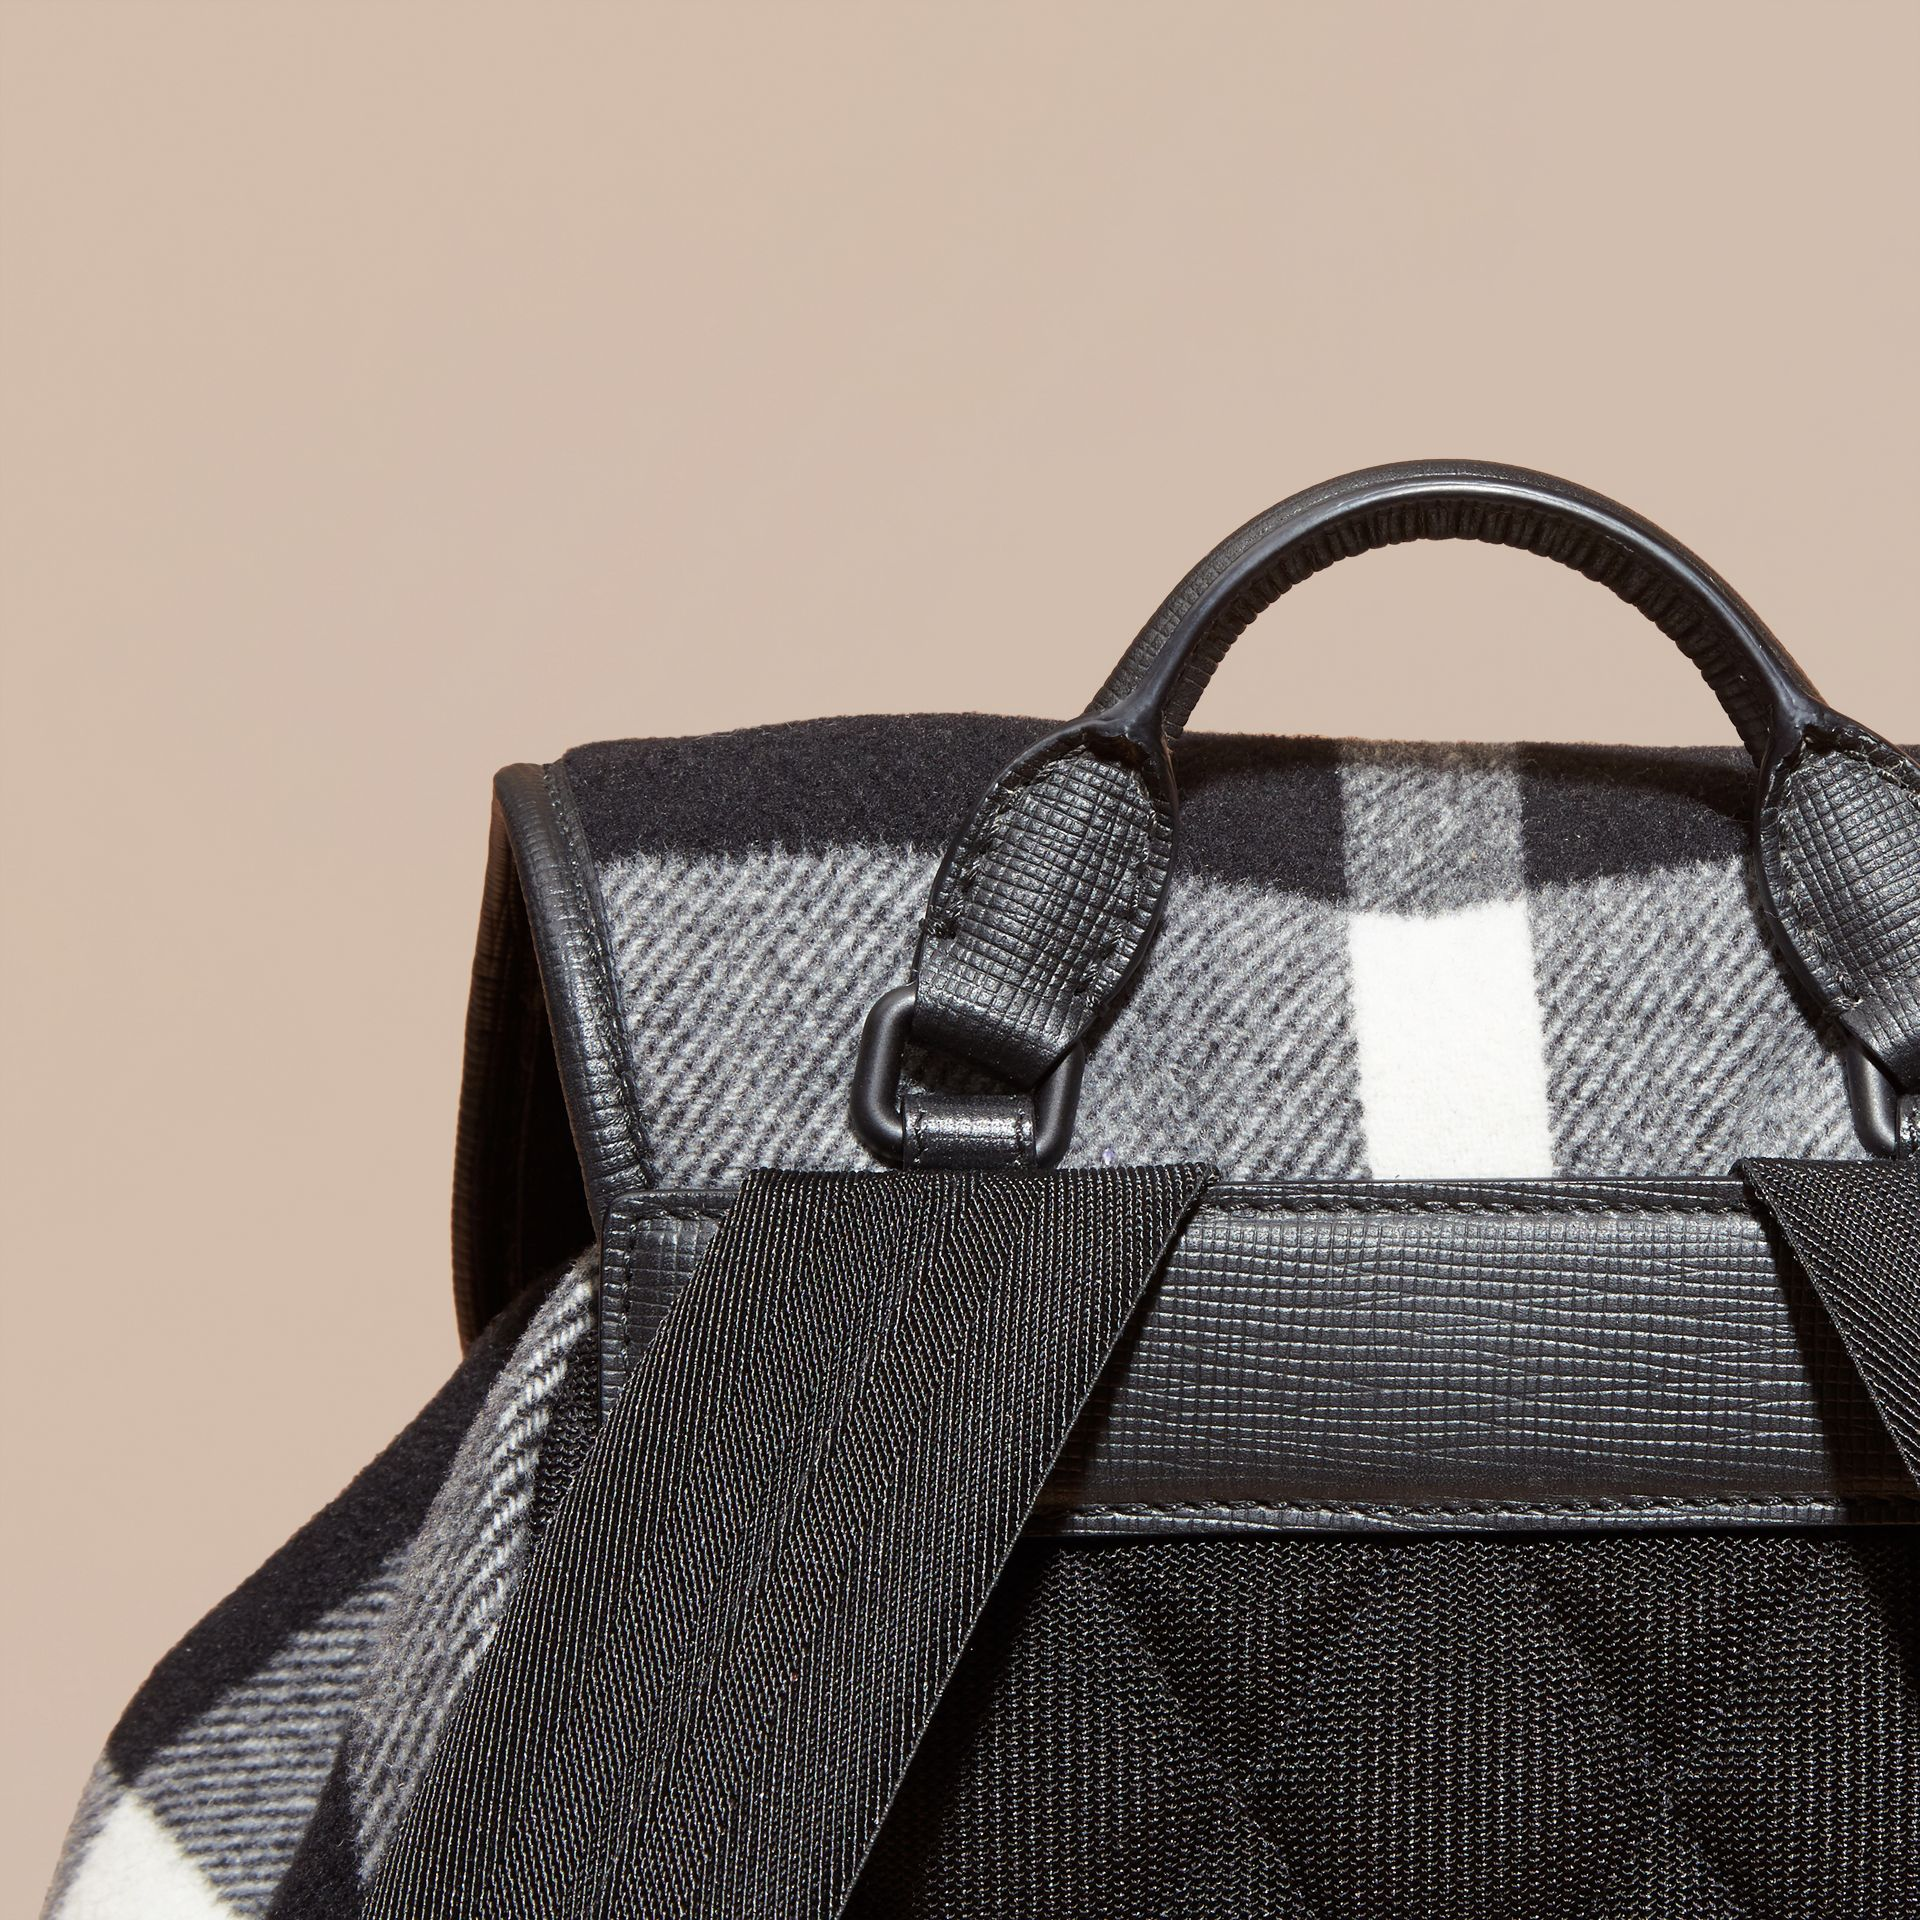 Black The Large Rucksack in Check Wool Blend and Leather Black - gallery image 6